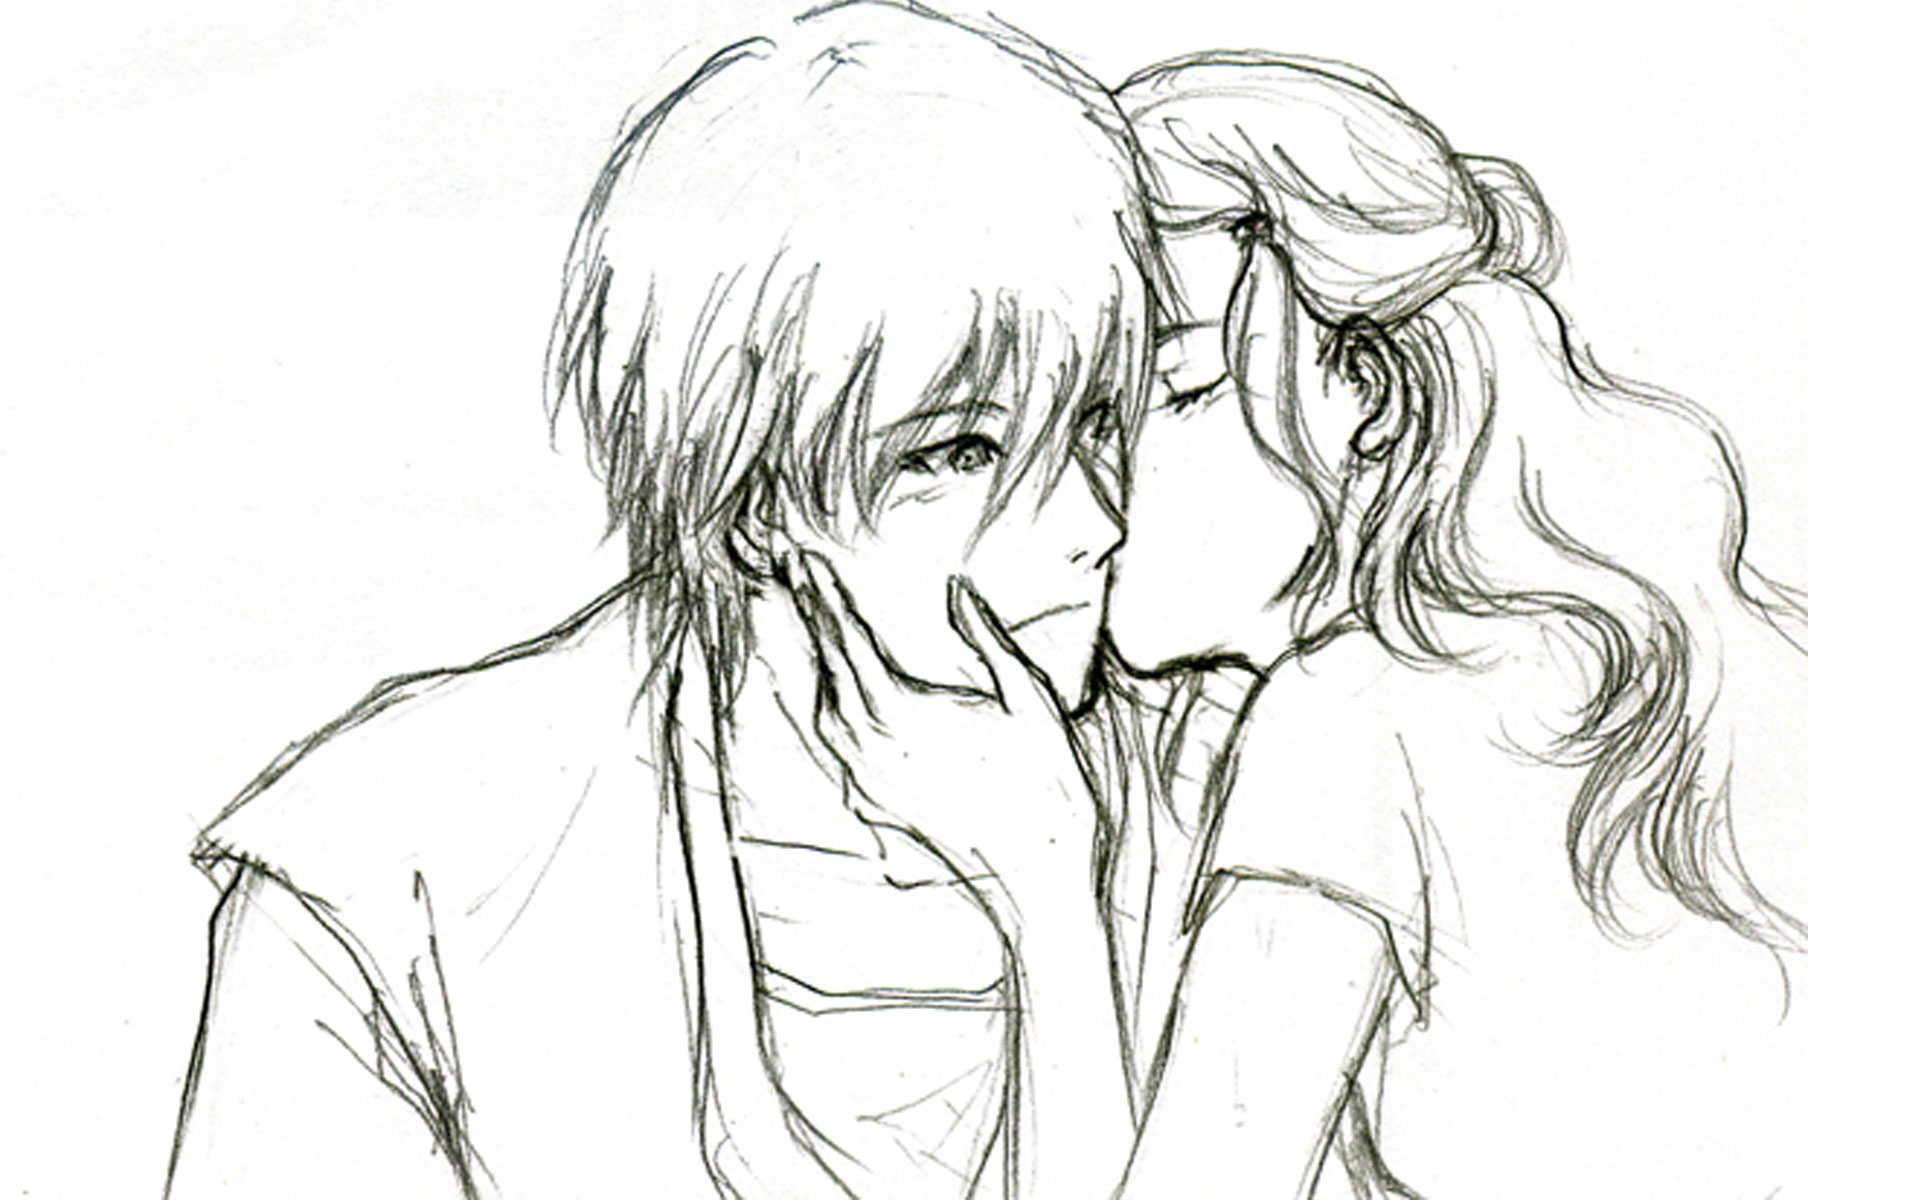 1920x1200 Hug And Kiss With Love Life In Pencil Sketch Pencil Drawings